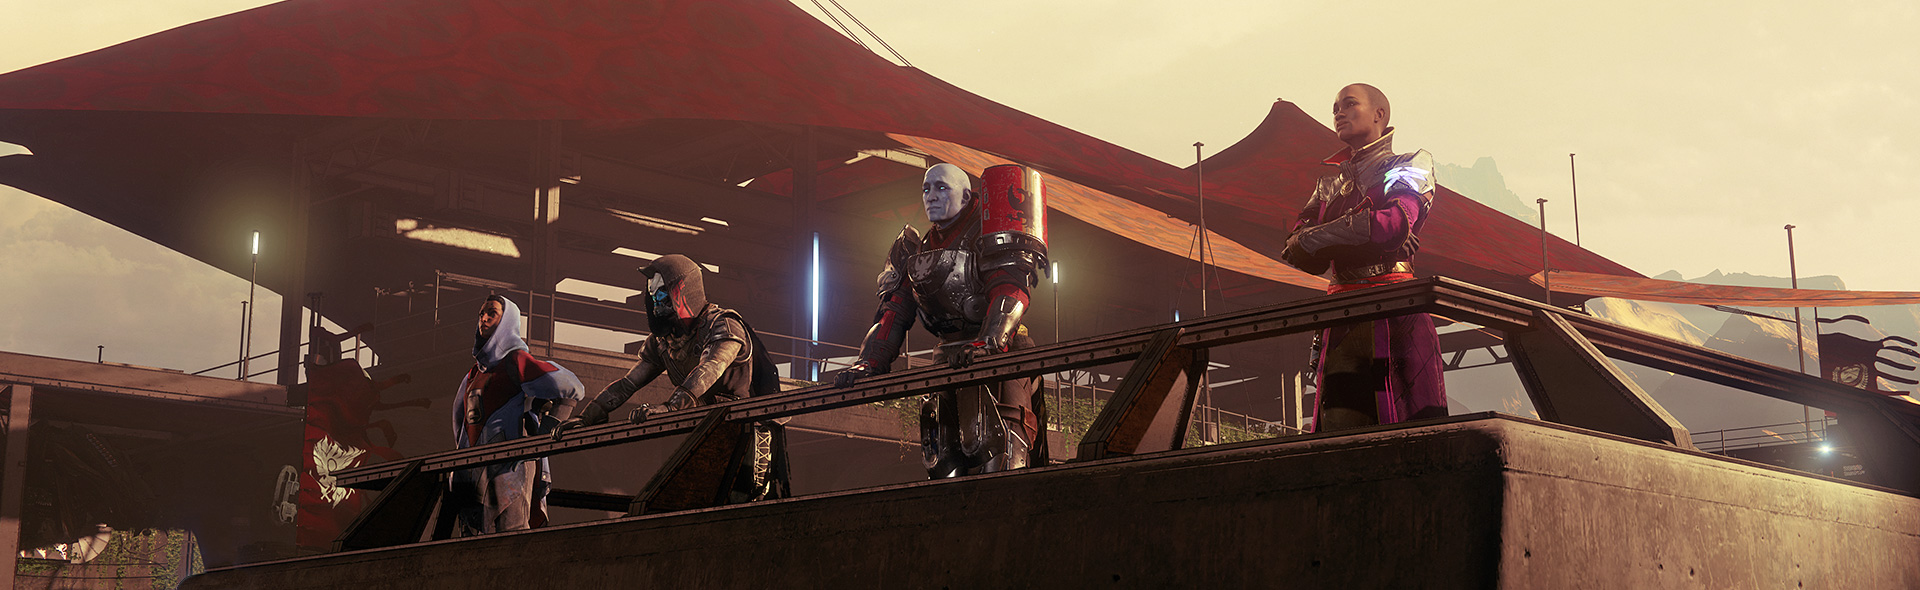 bungie_day_2018_header.jpg?cv=3983621215&av=1429512670